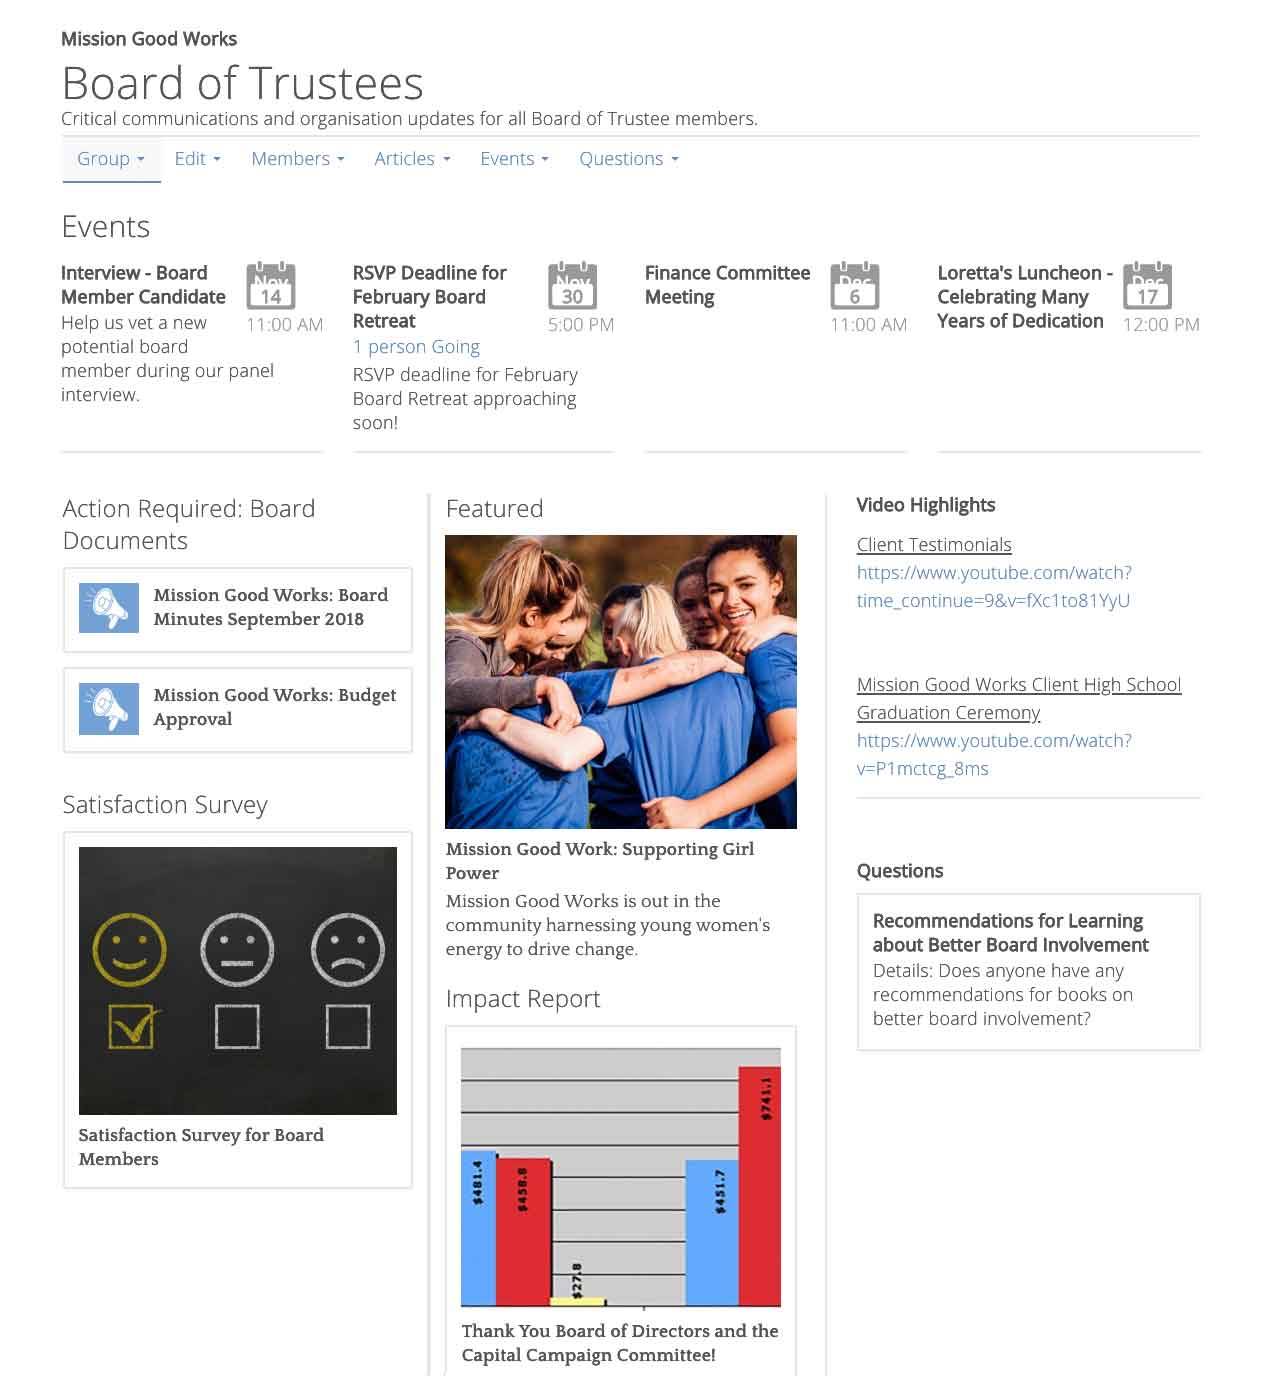 Board/Trustees interactive group screen shot